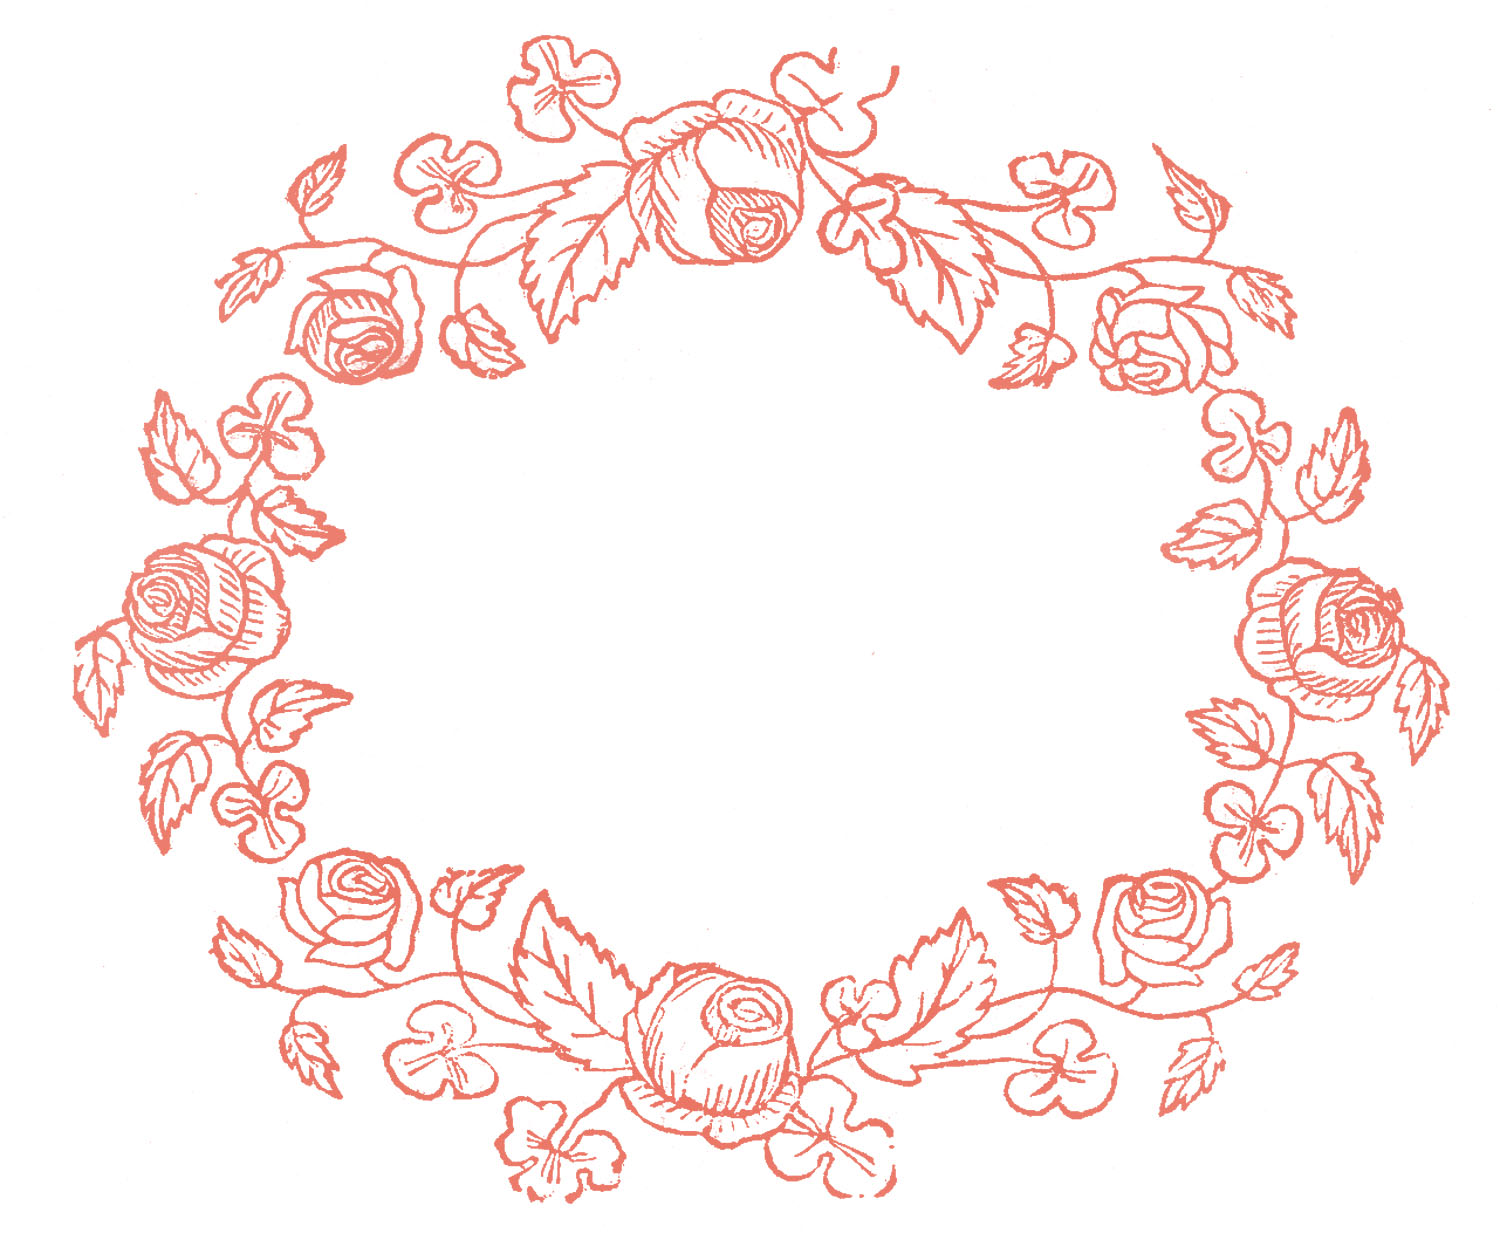 Royalty Free Images - Rose Wreaths - Embroidery Pattern - The ...